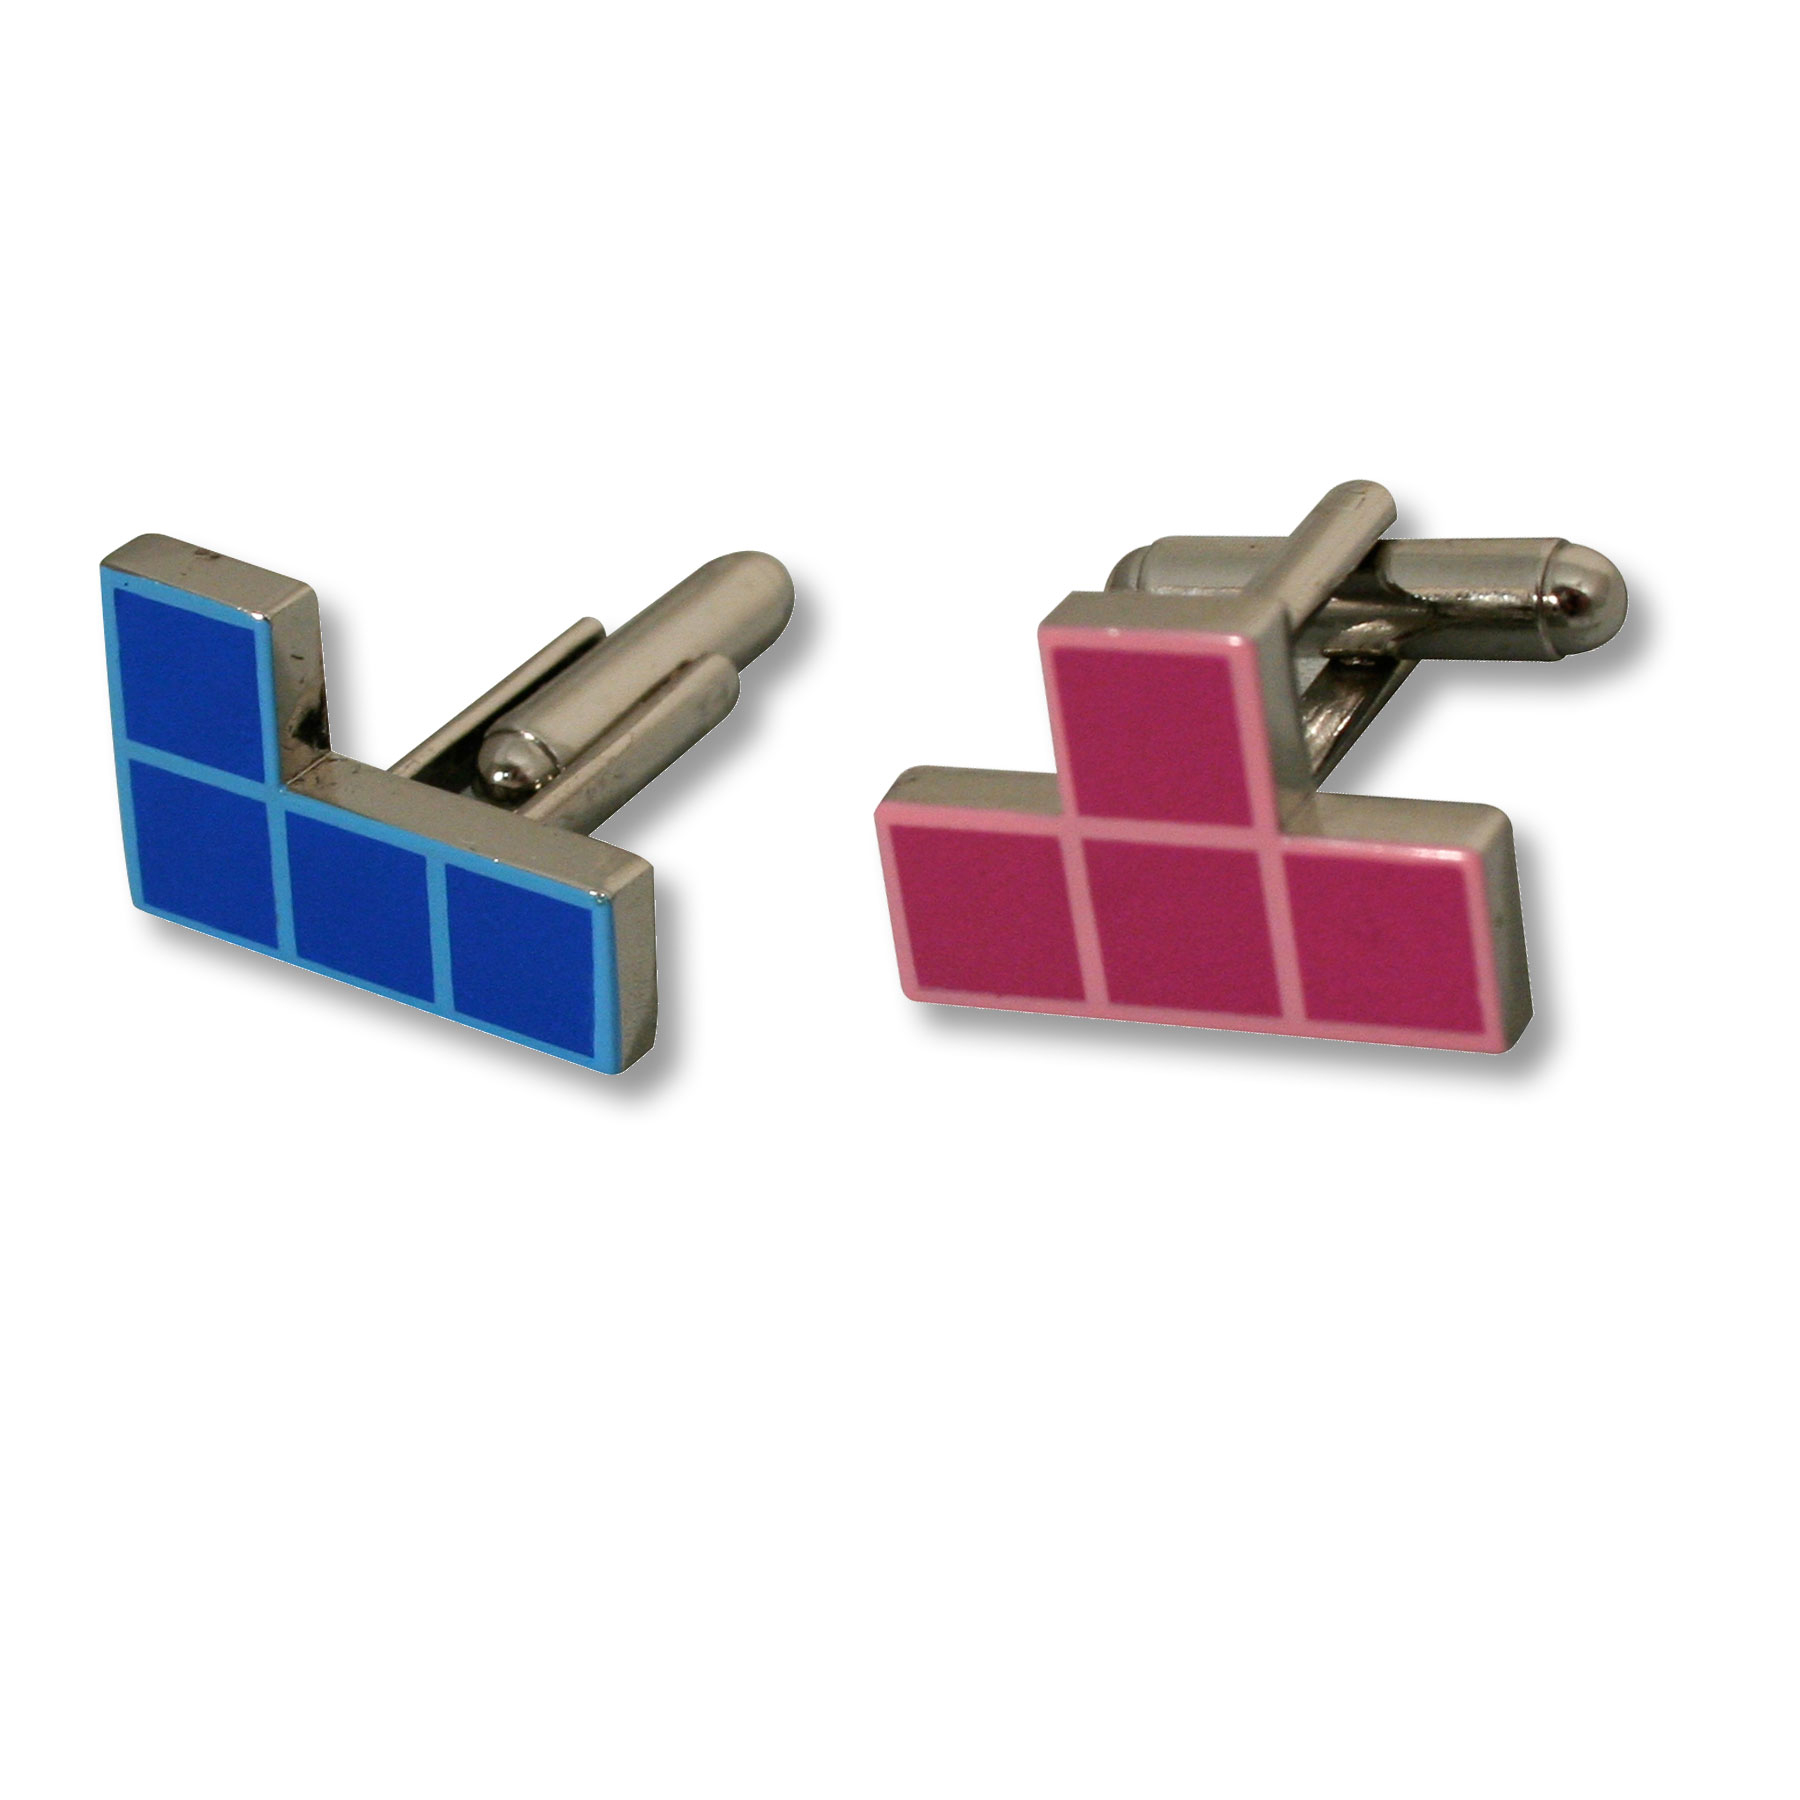 Photograph: Tetris Cufflinks